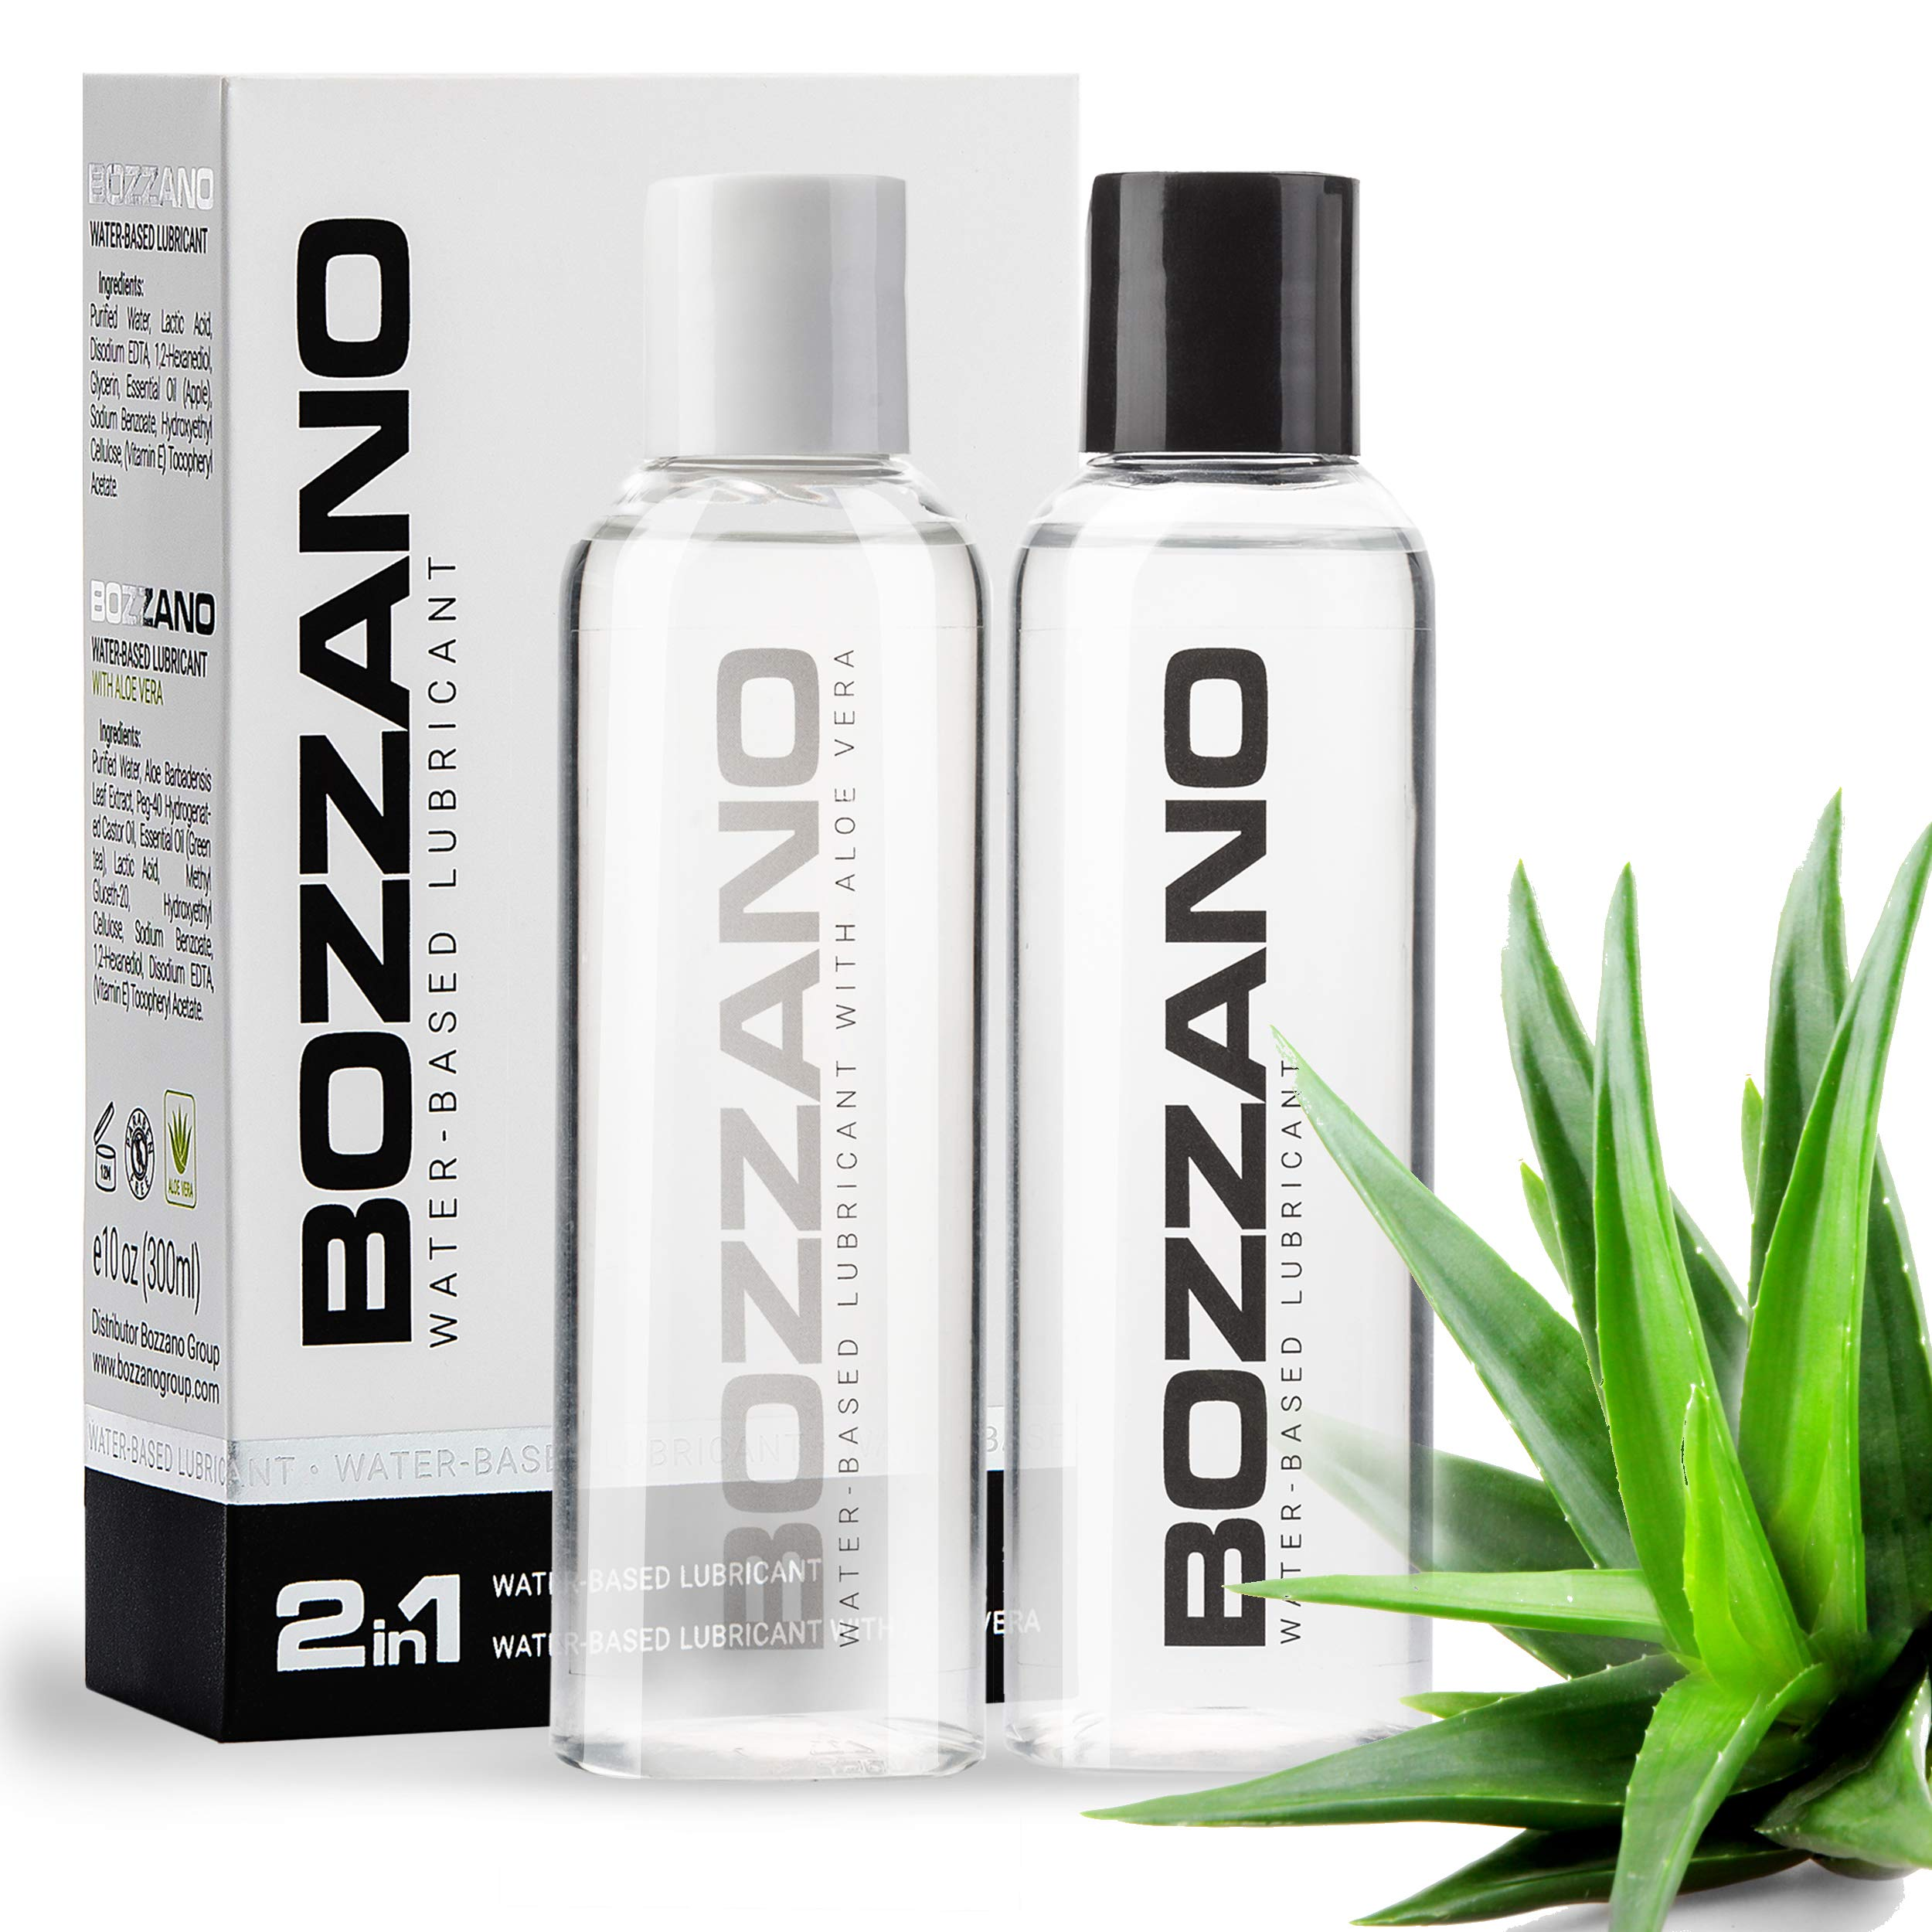 Lube for Women Men Couples - Personal Lubricant - 10 oz- Intimate Lubricants - Natural Lubricant - Organic Lube - Water-Based Lubricant - Aloe lube by BOZZANO